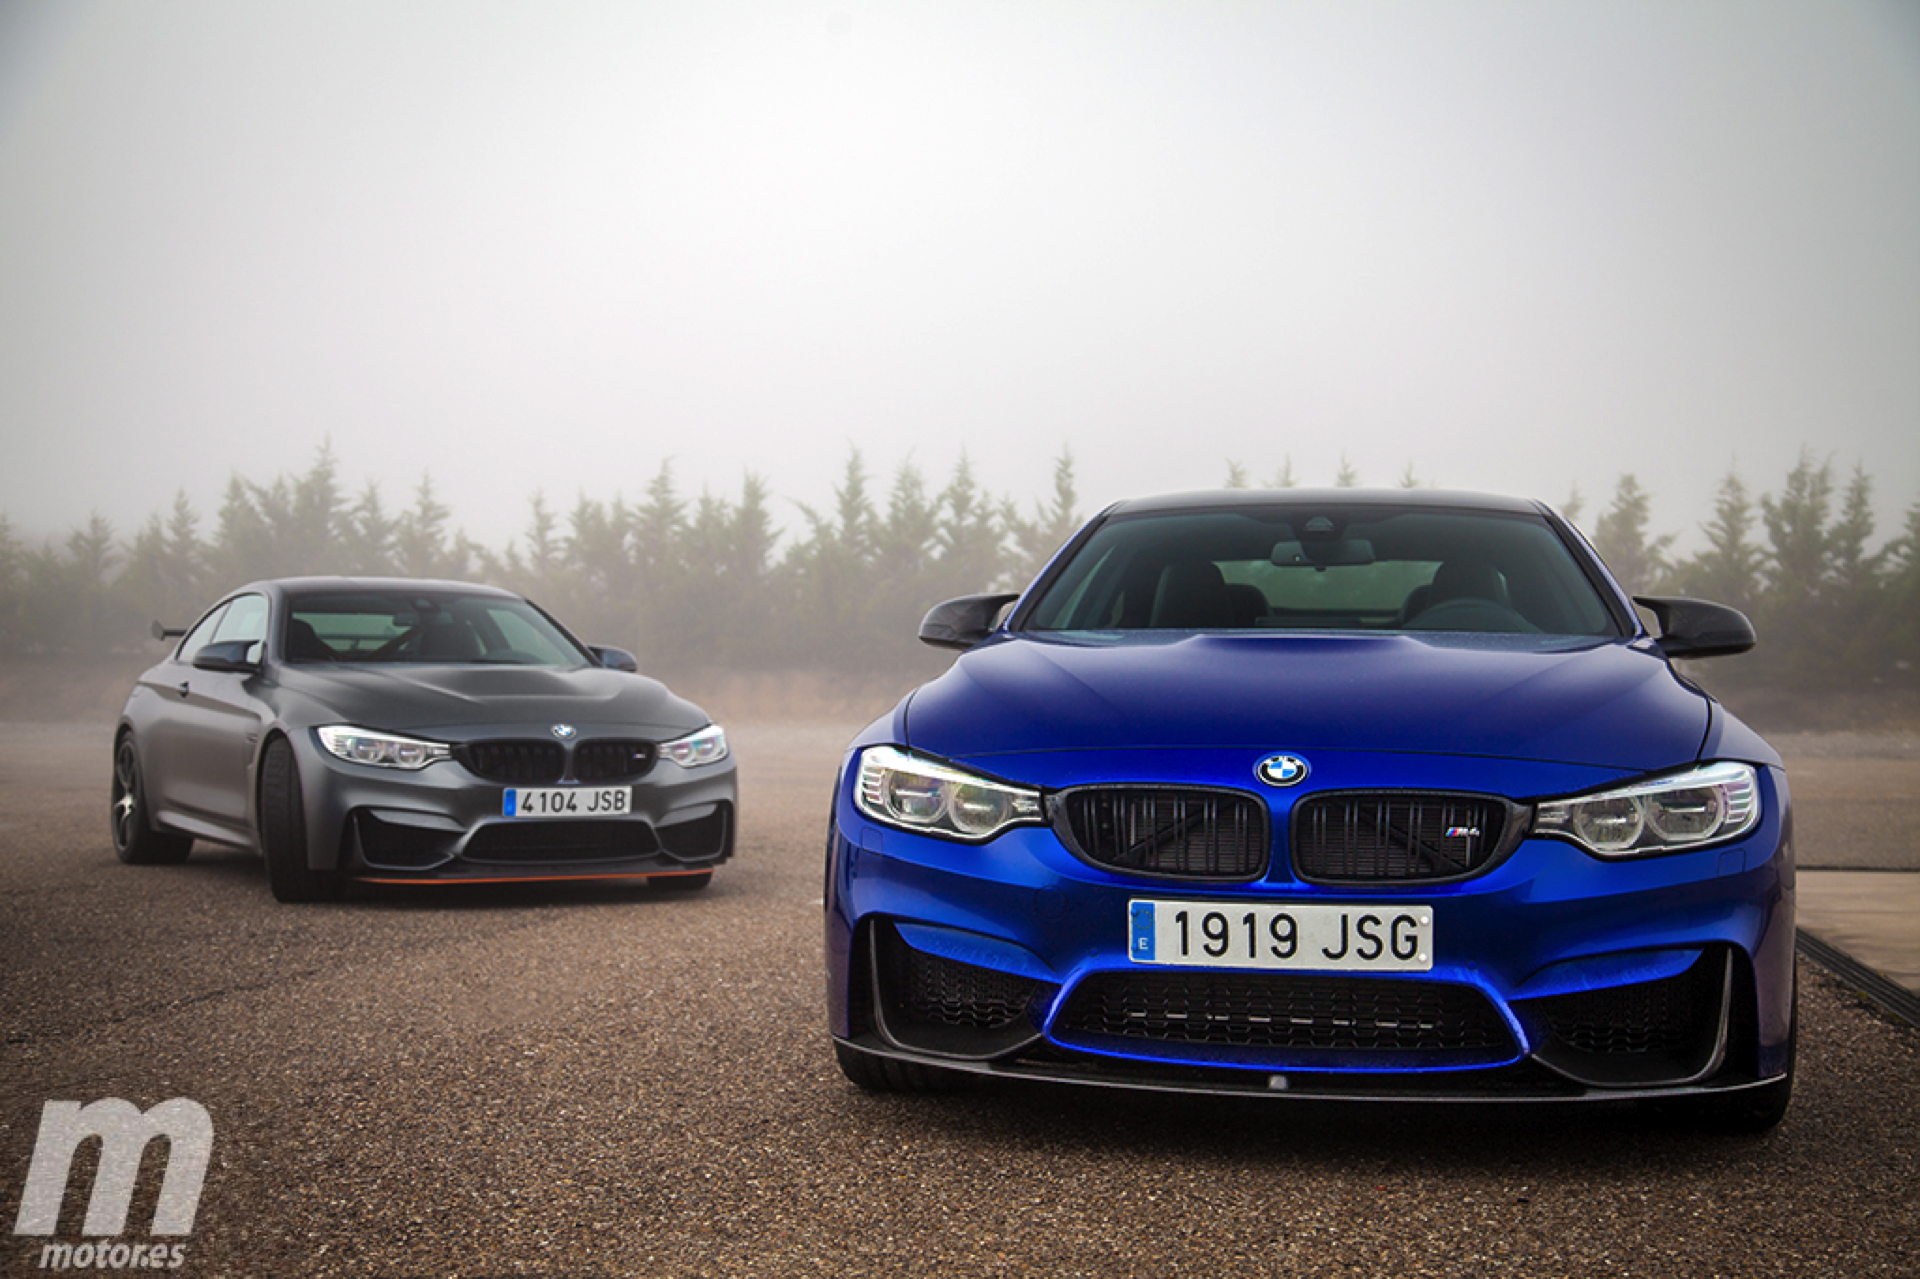 Bmw M4 Gts Vs Bmw M4 Competition Sport Quale La Migliore Bmwpassion Blog